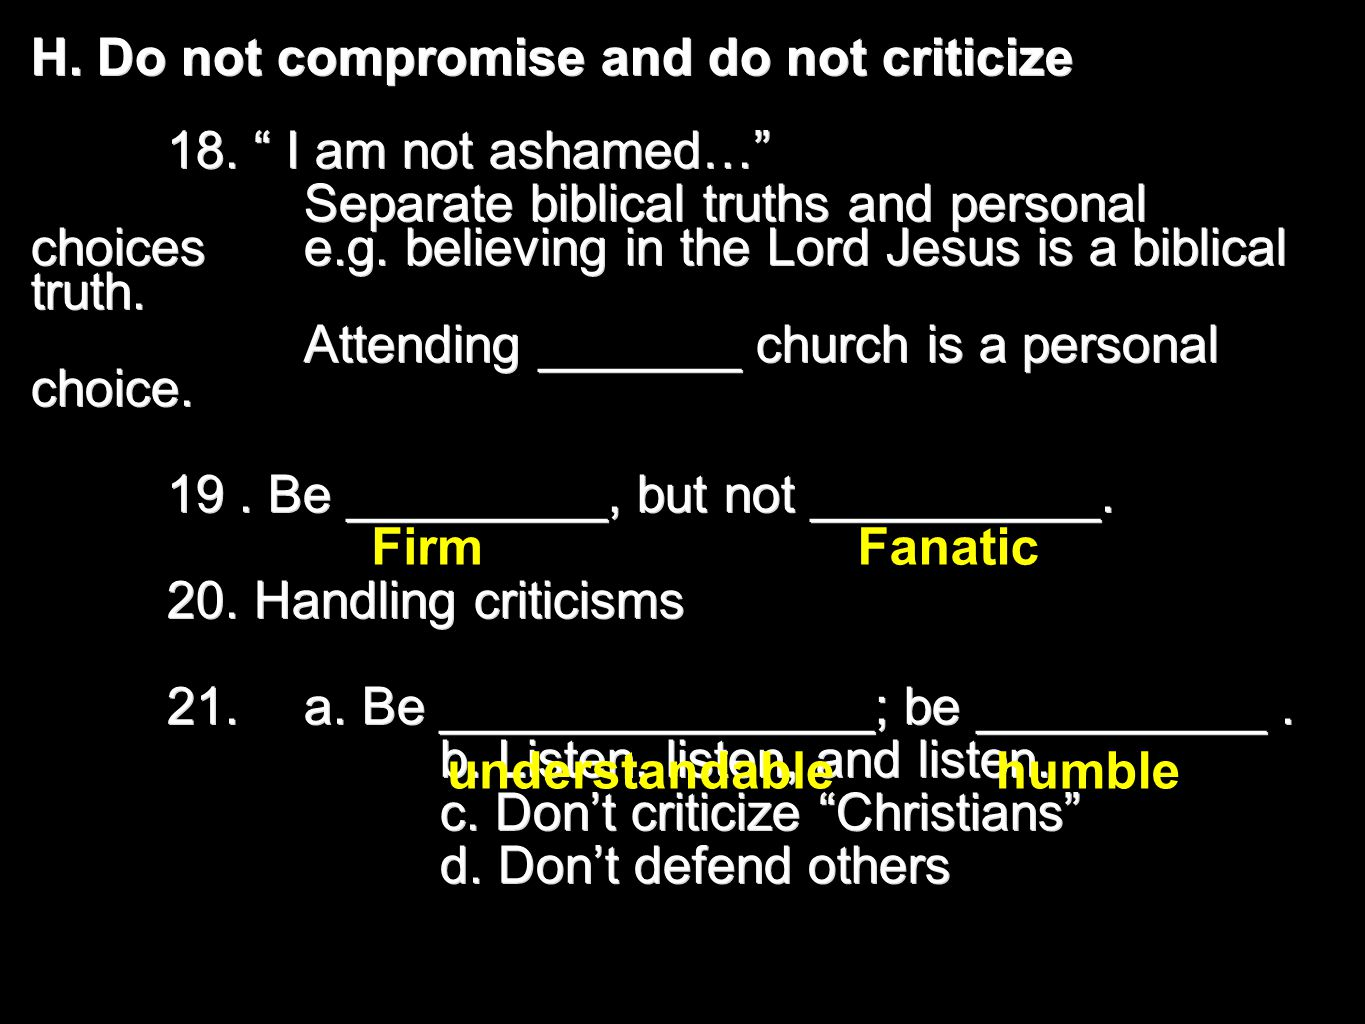 H. Do not compromise and do not criticize 18.